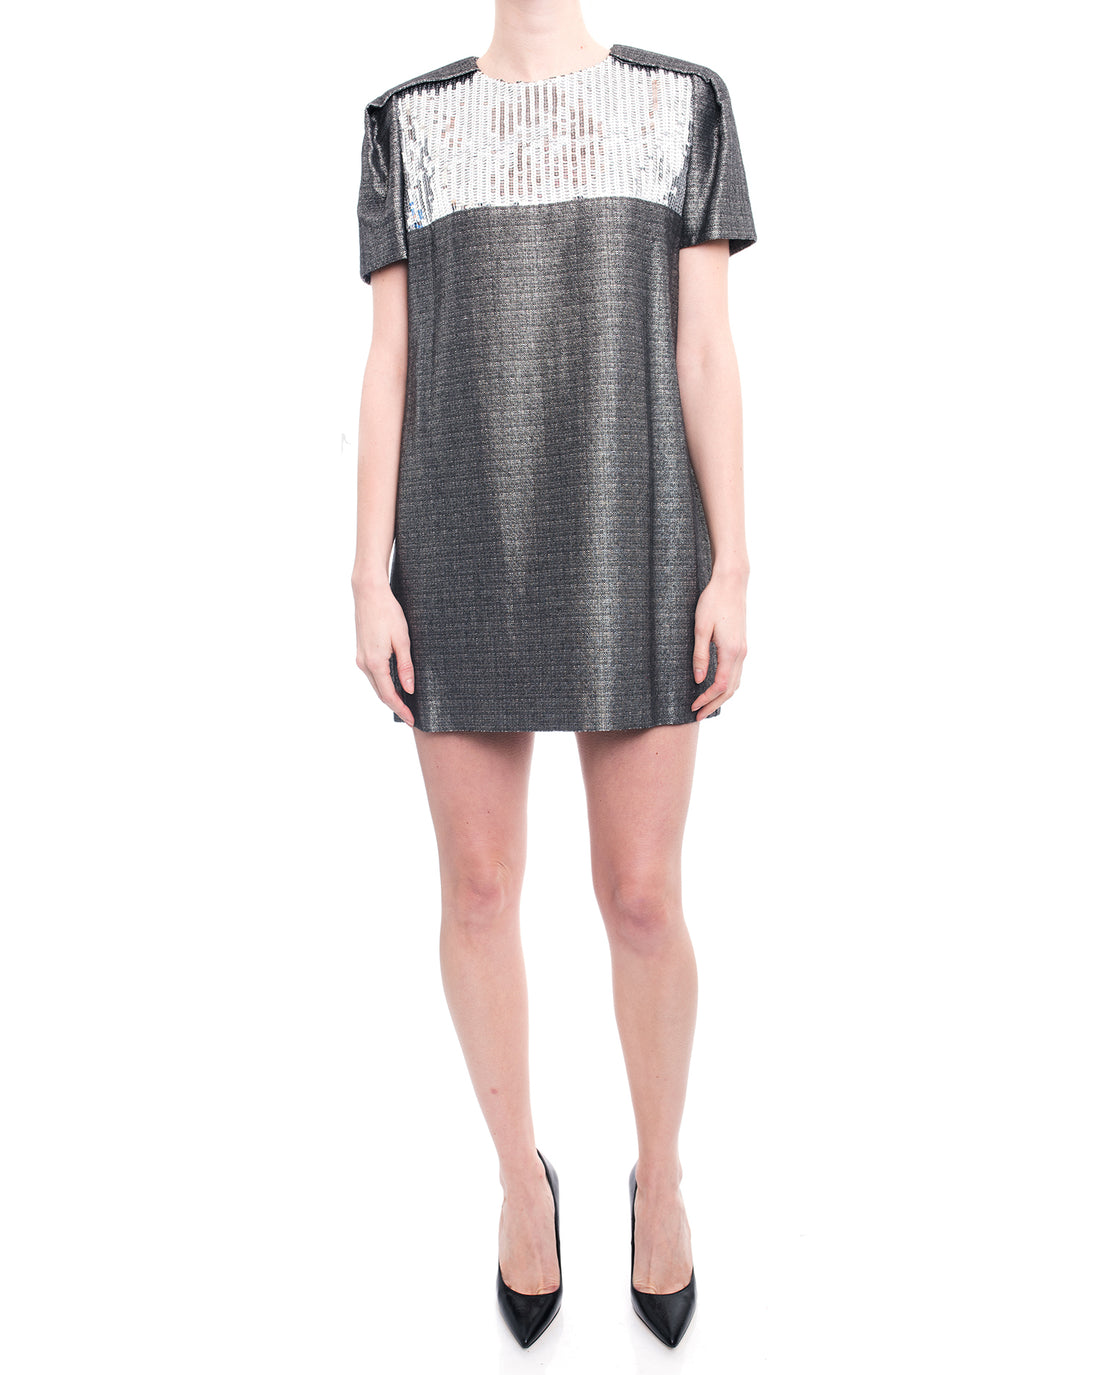 Saint Laurent Pewter Metallic Shift Dress with Sequin Inset - 8